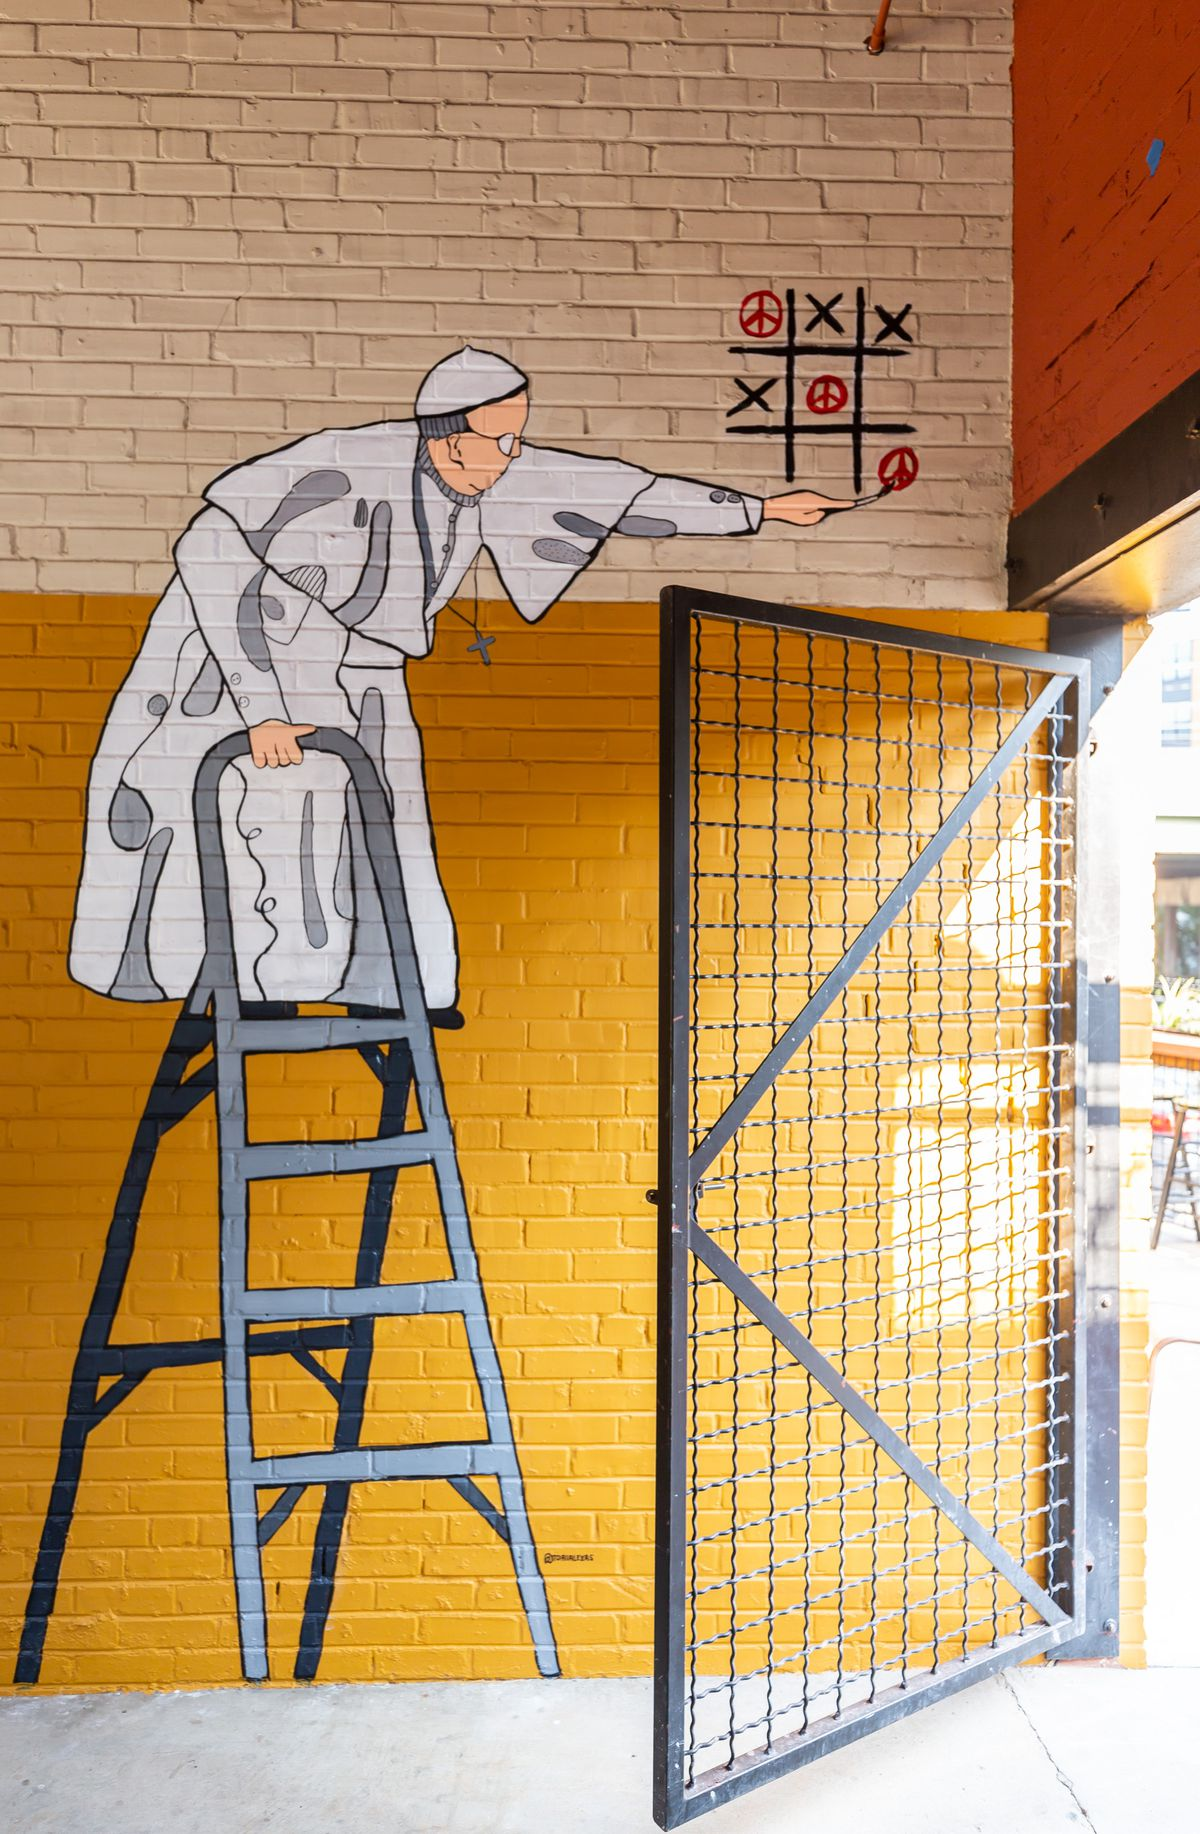 a painting on a brick wall of Rome's tic tac toe Pope on a ladder playing the game